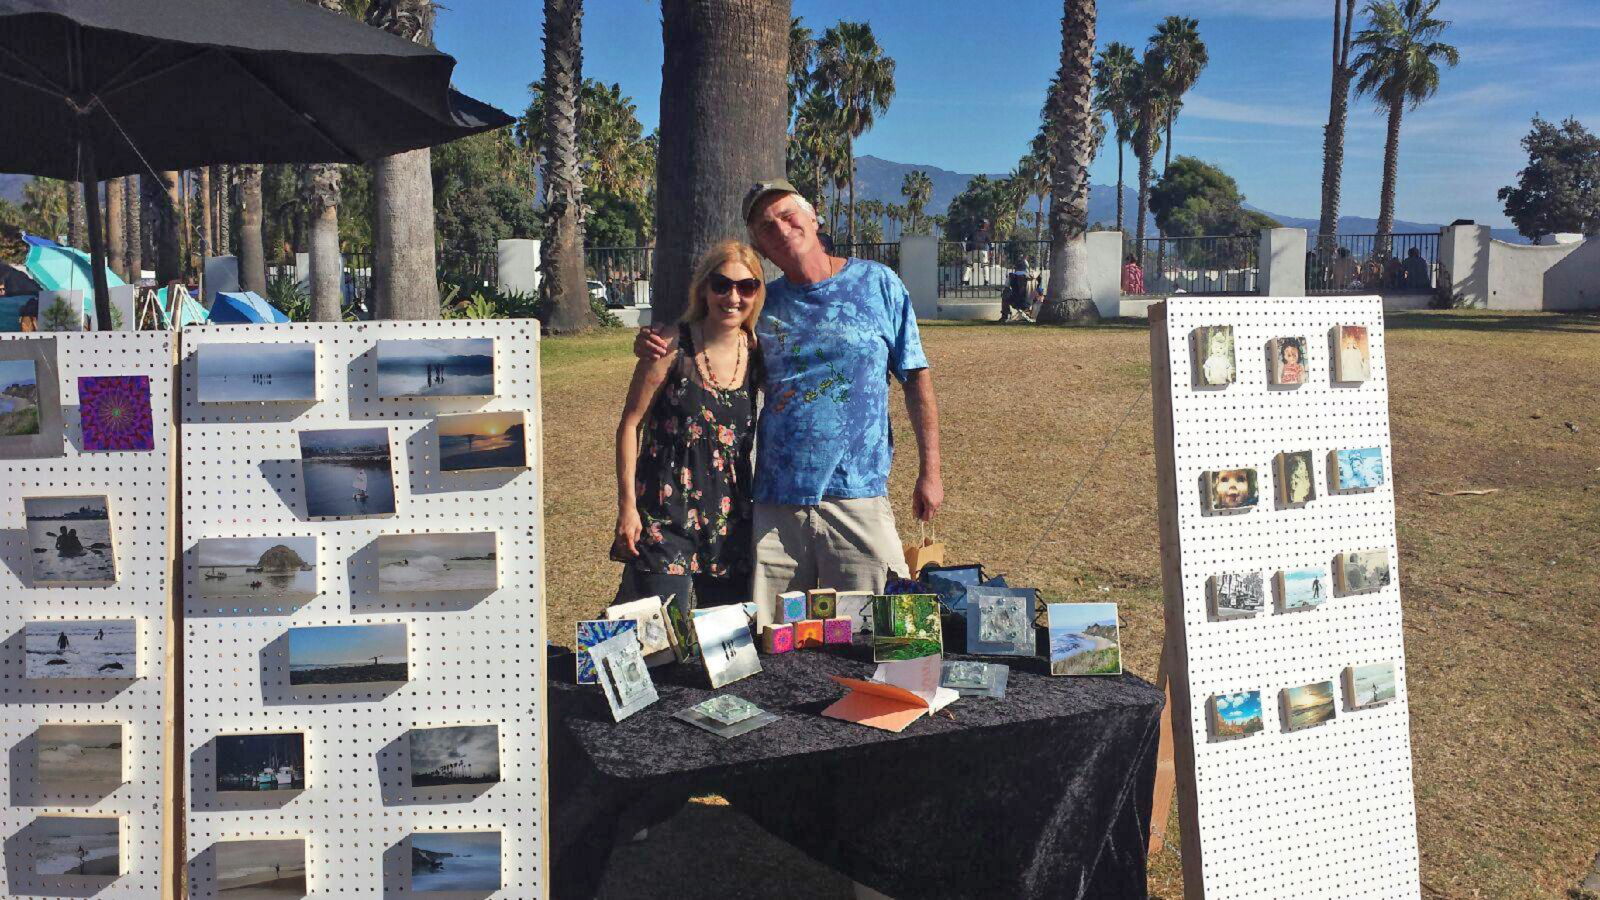 Santa Barbara Art Show on the beach